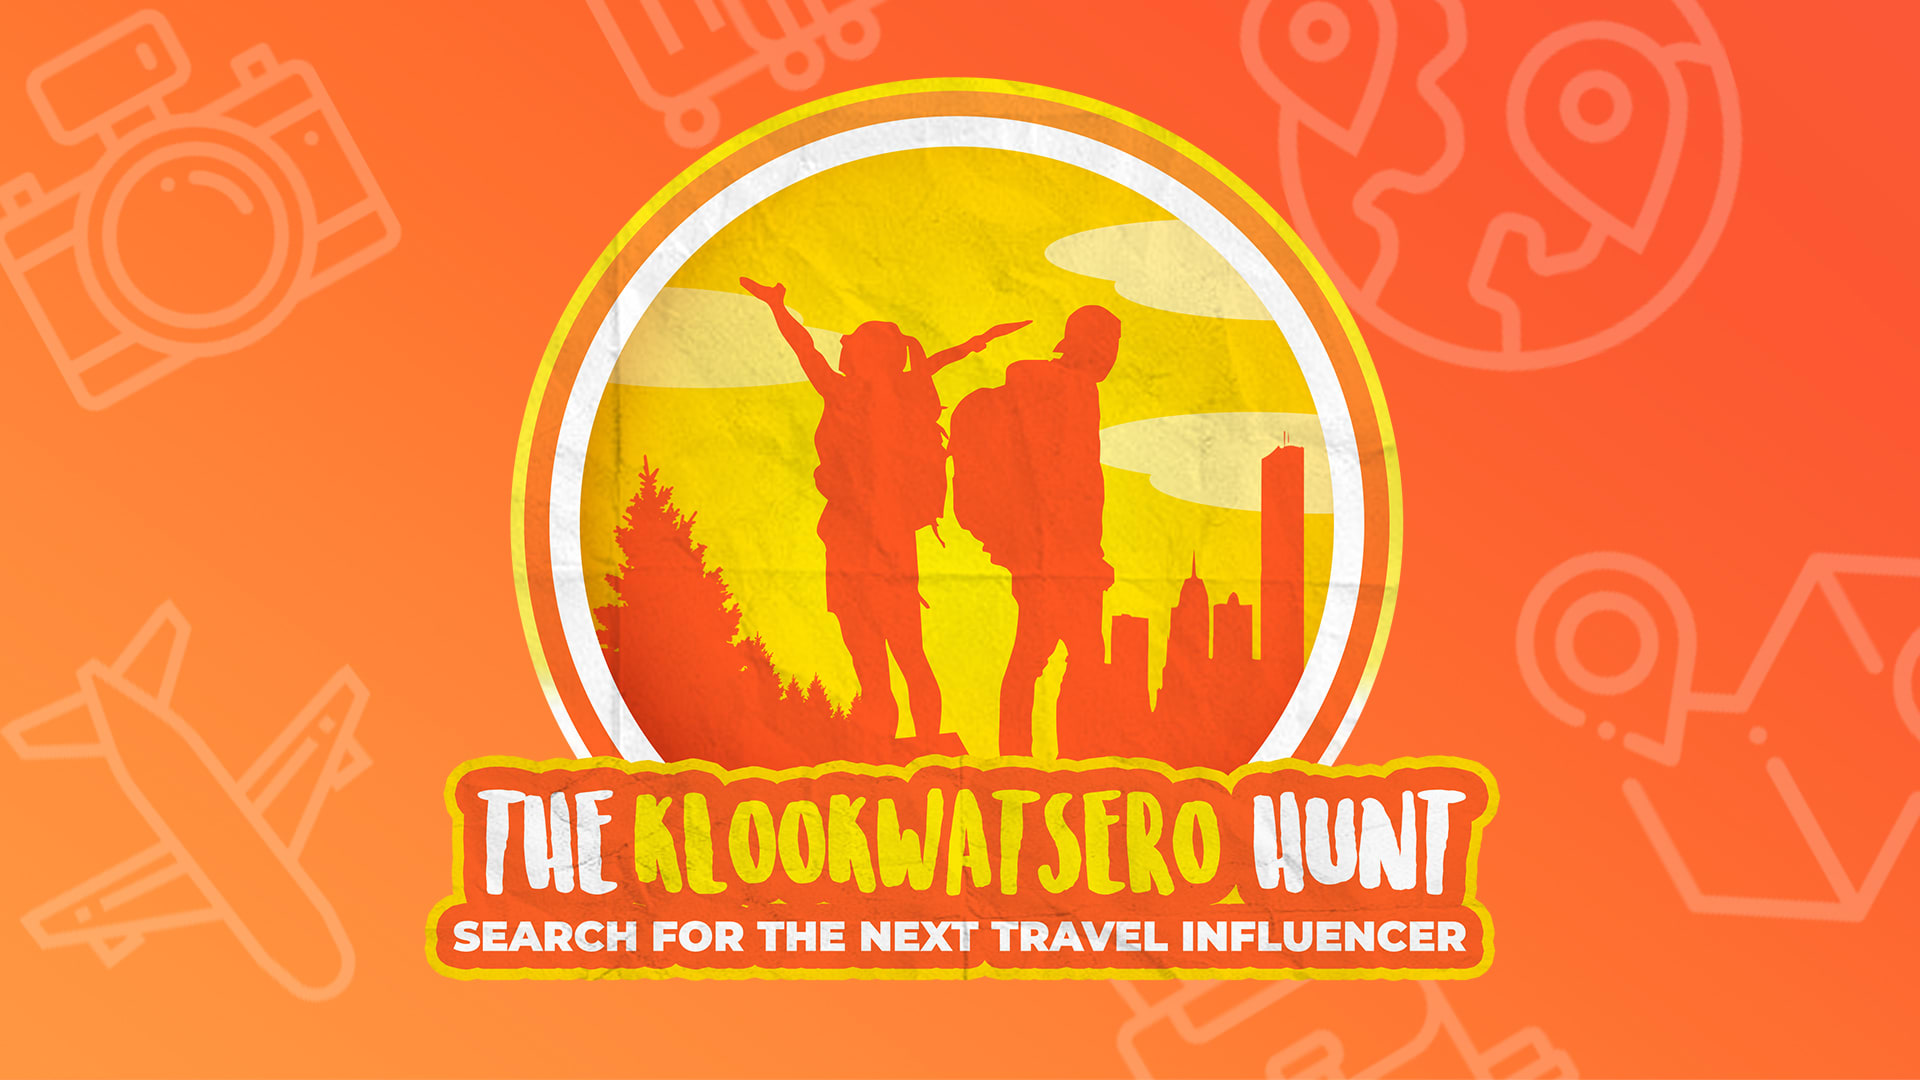 Klookwaterso Hunt